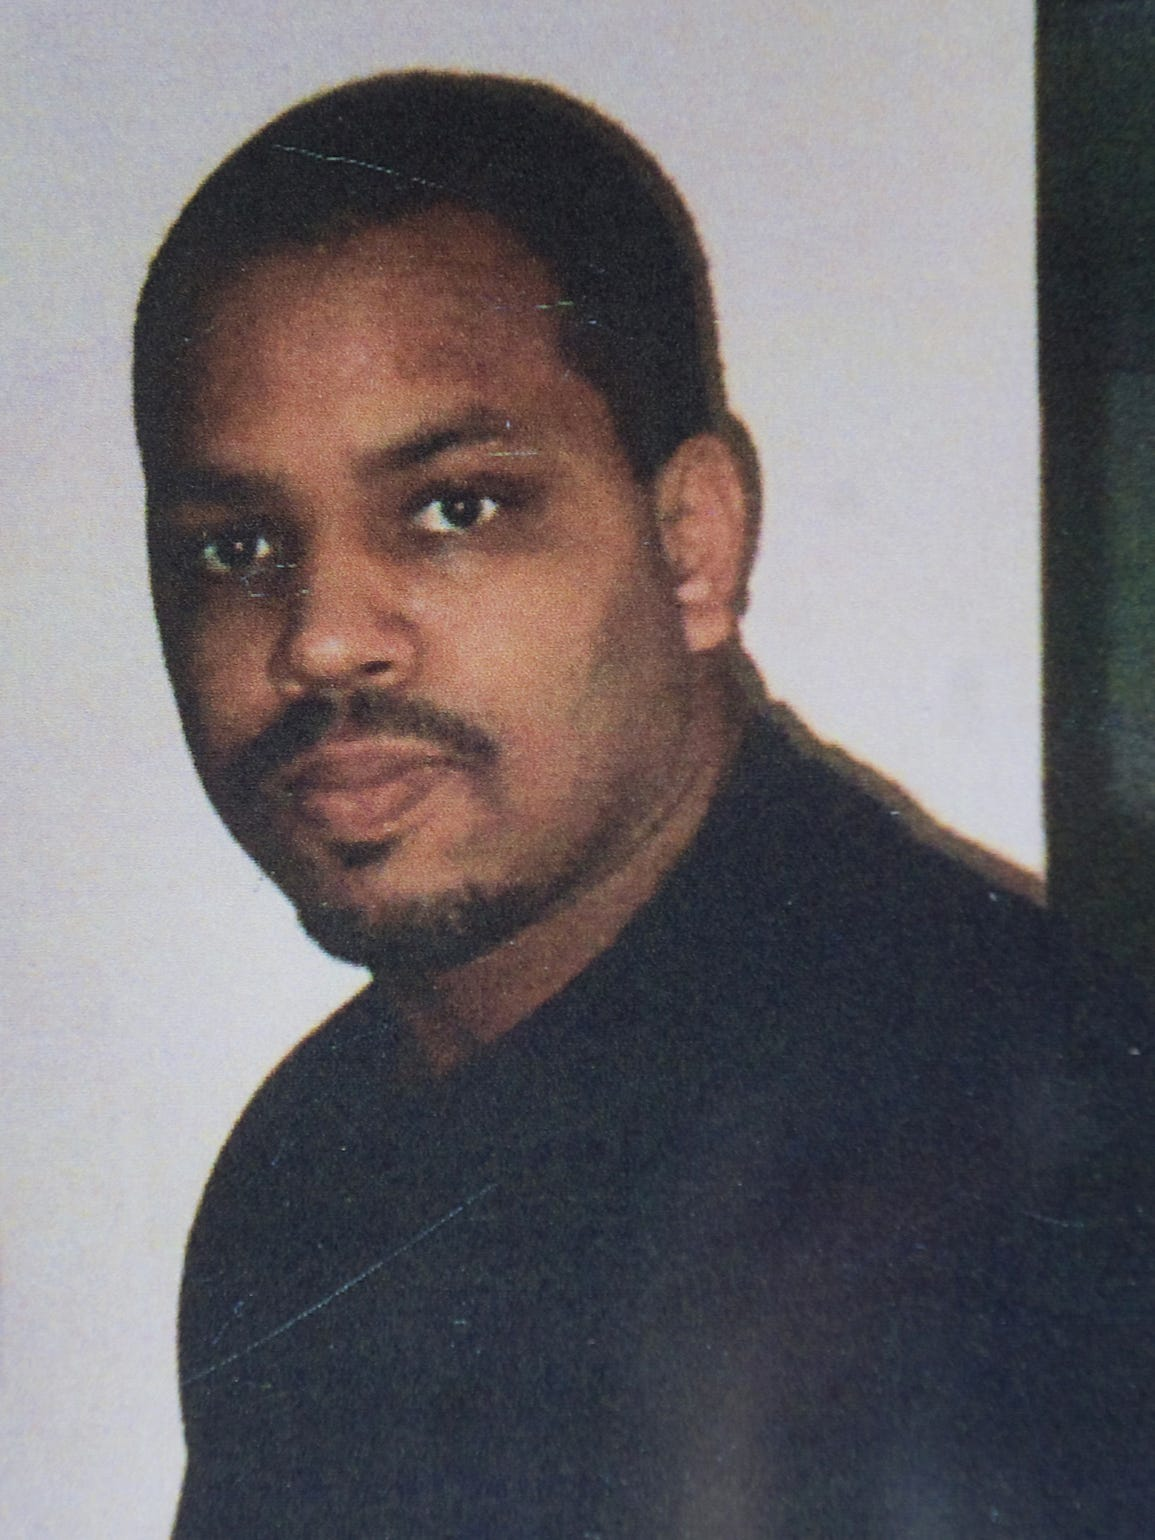 Keith Briscoe died during a struggle with Winslow Police